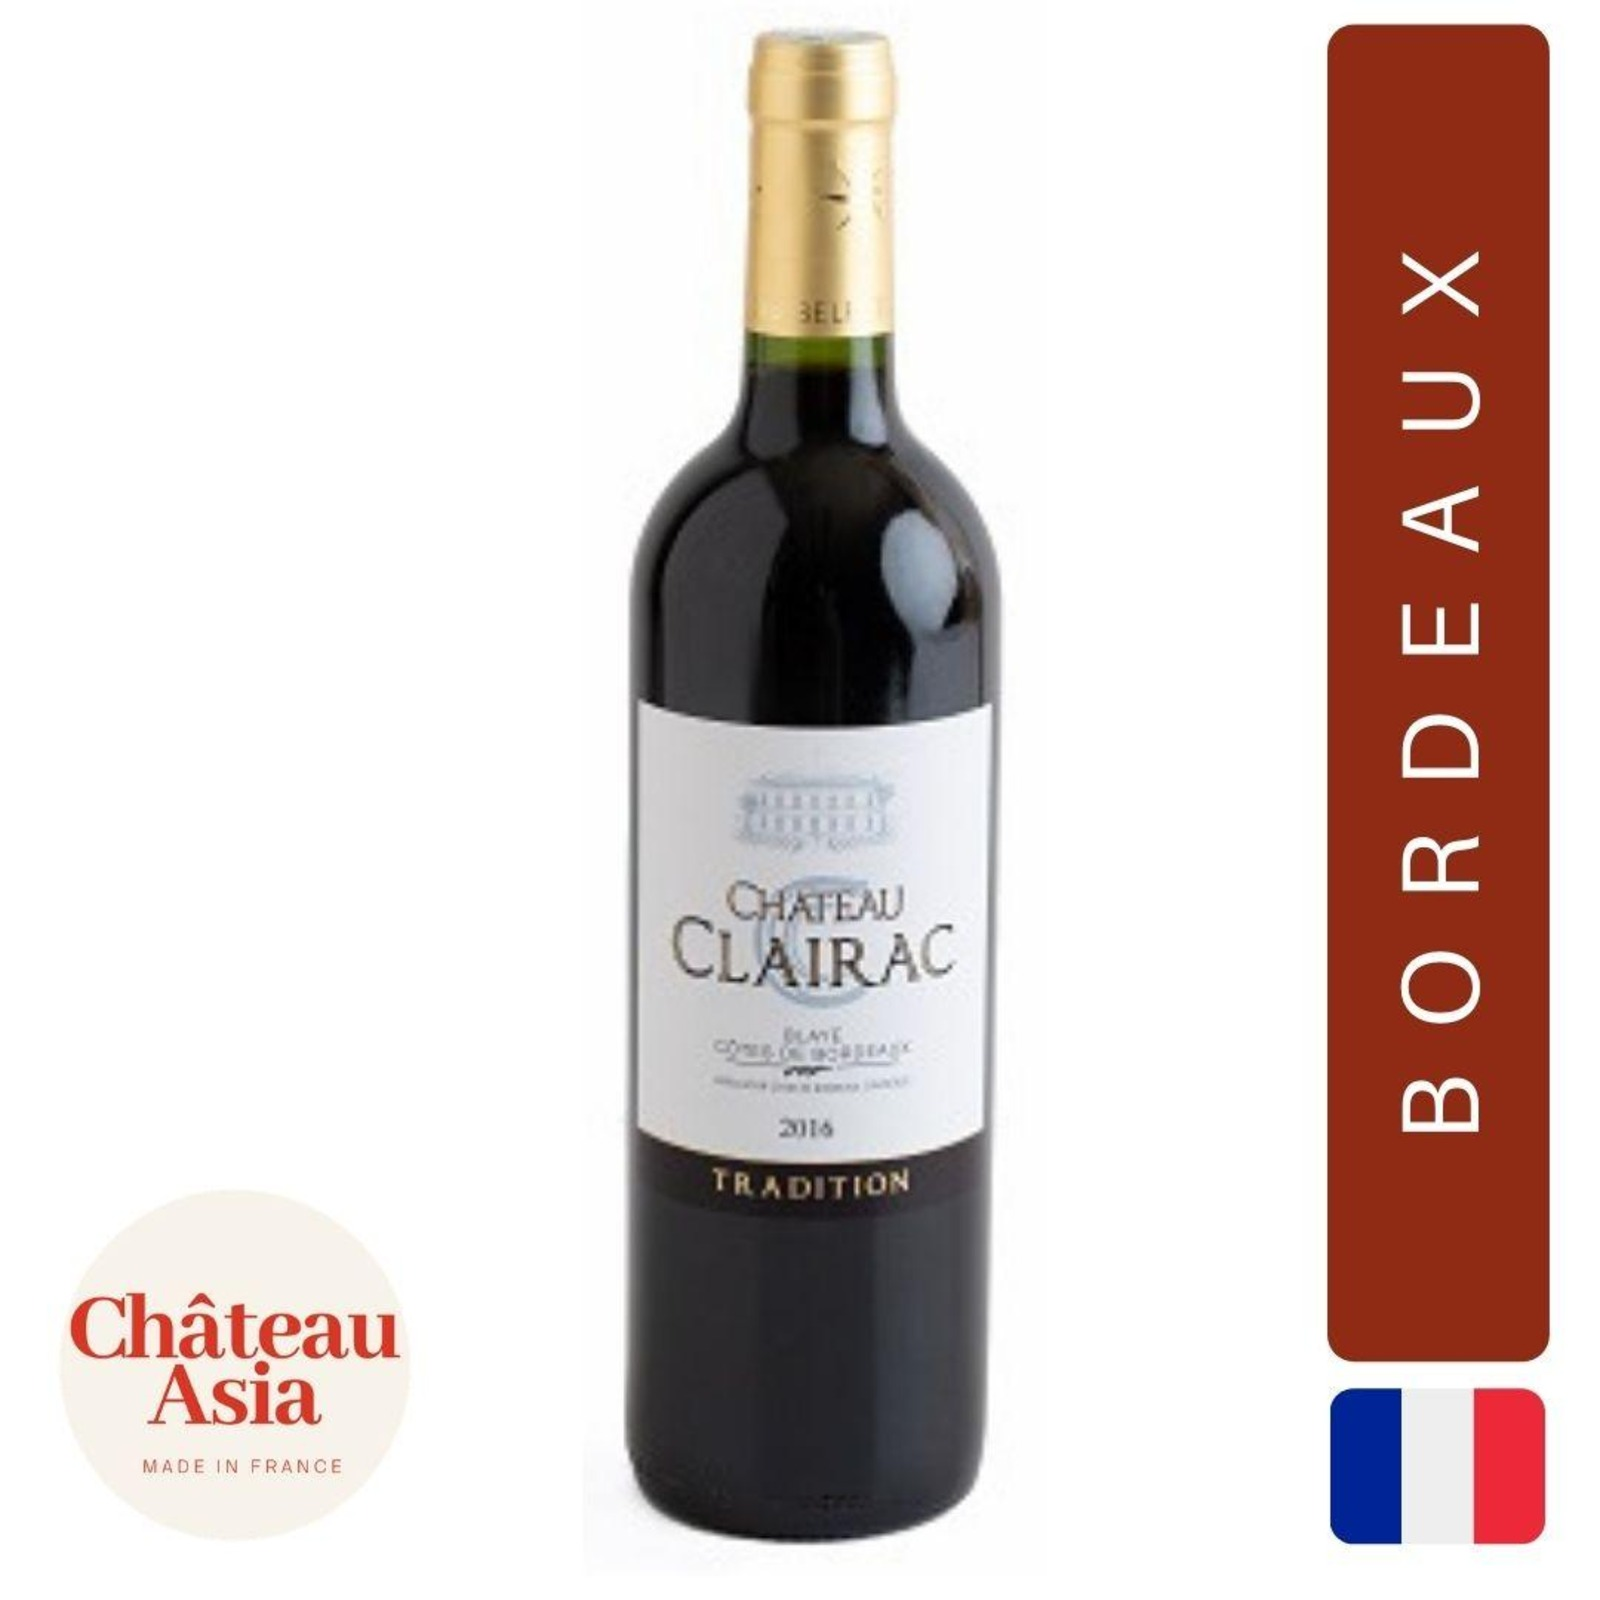 Chateau de Clairac - Blaye Ctes de Bordeaux - Red Wine